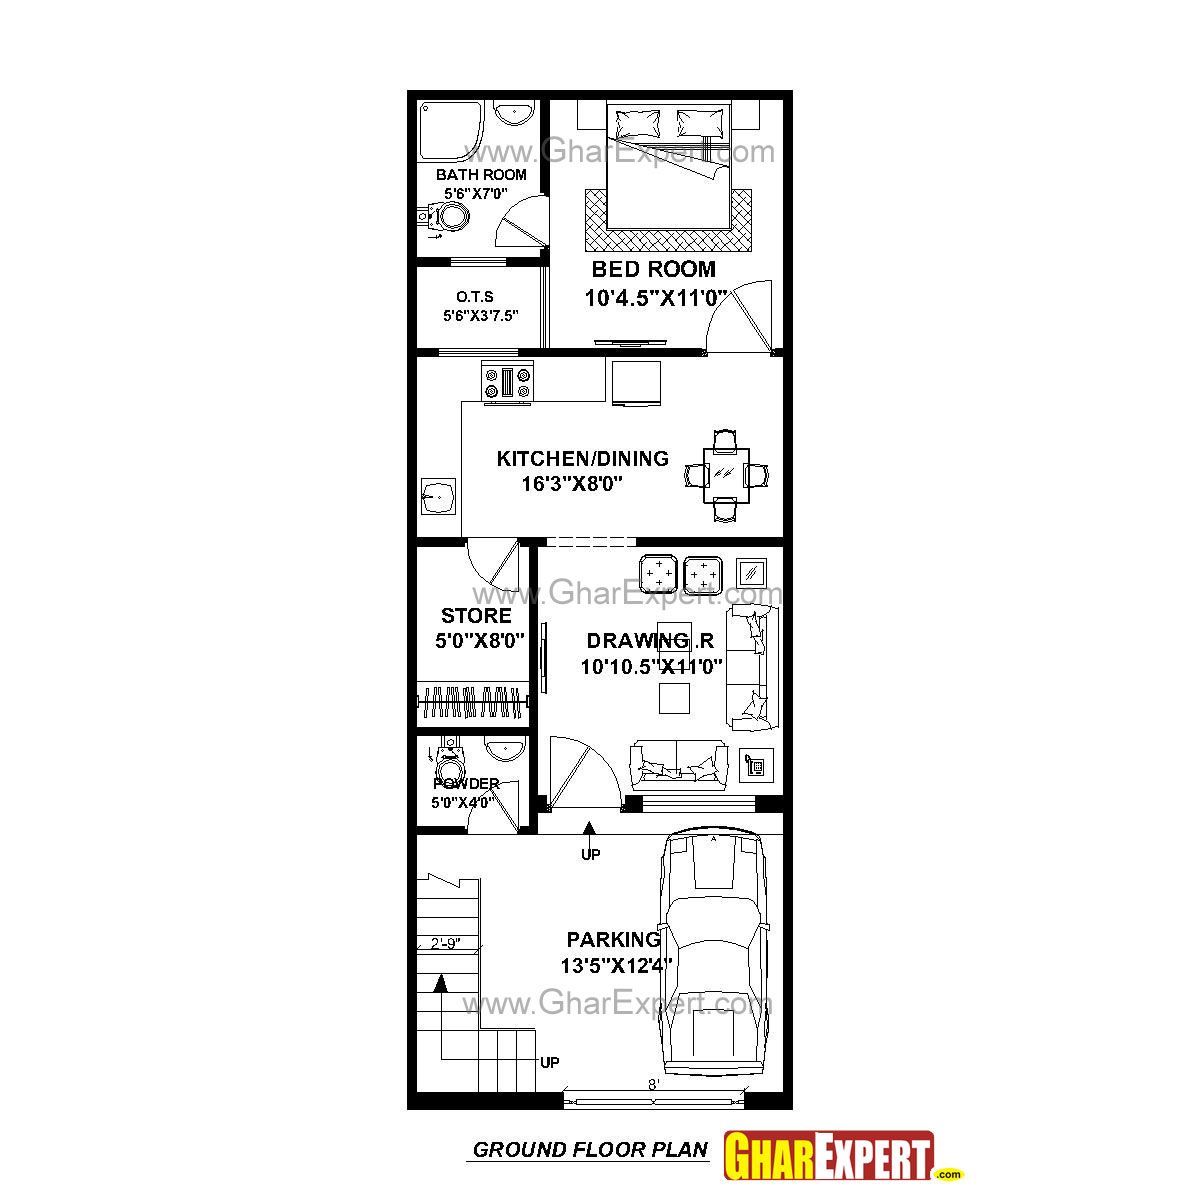 House plan for 17 feet by 45 feet plot plot size 85 square yards house plan for 17 feet by 45 feet plot plot size 85 square yards gharexpert malvernweather Image collections